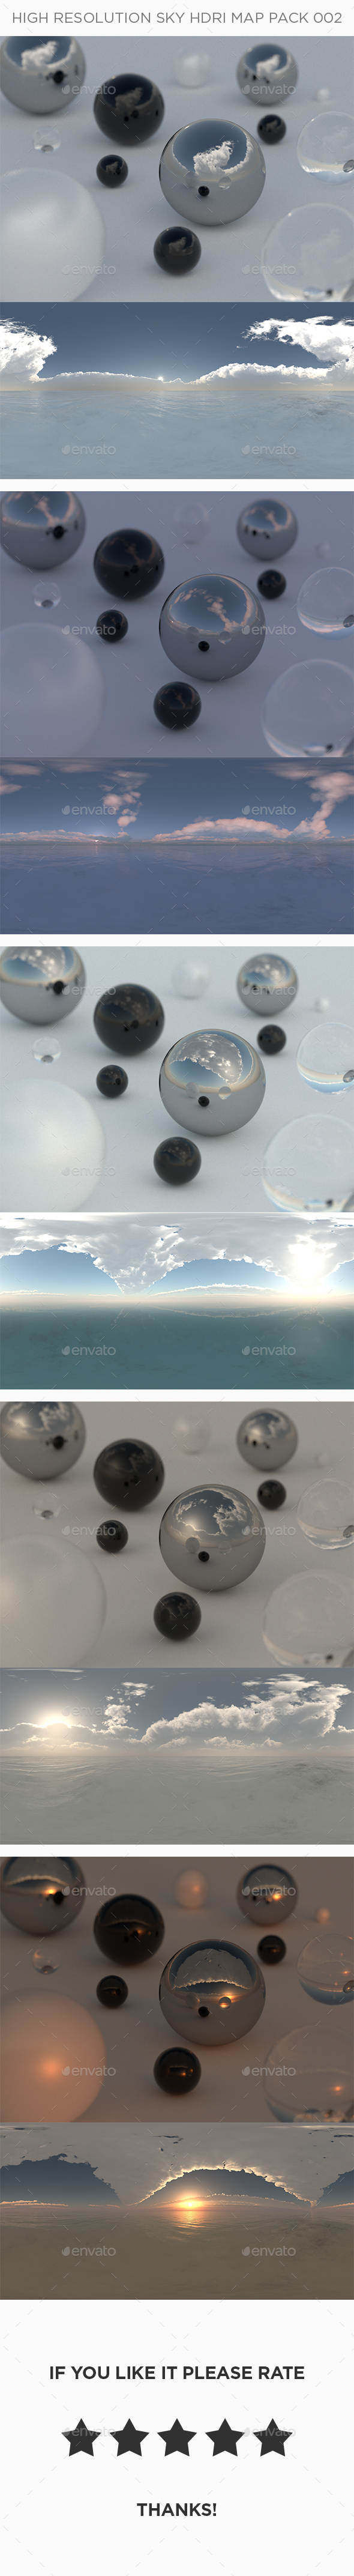 High Resolution Sky HDRi Map Pack 002 - 3DOcean Item for Sale